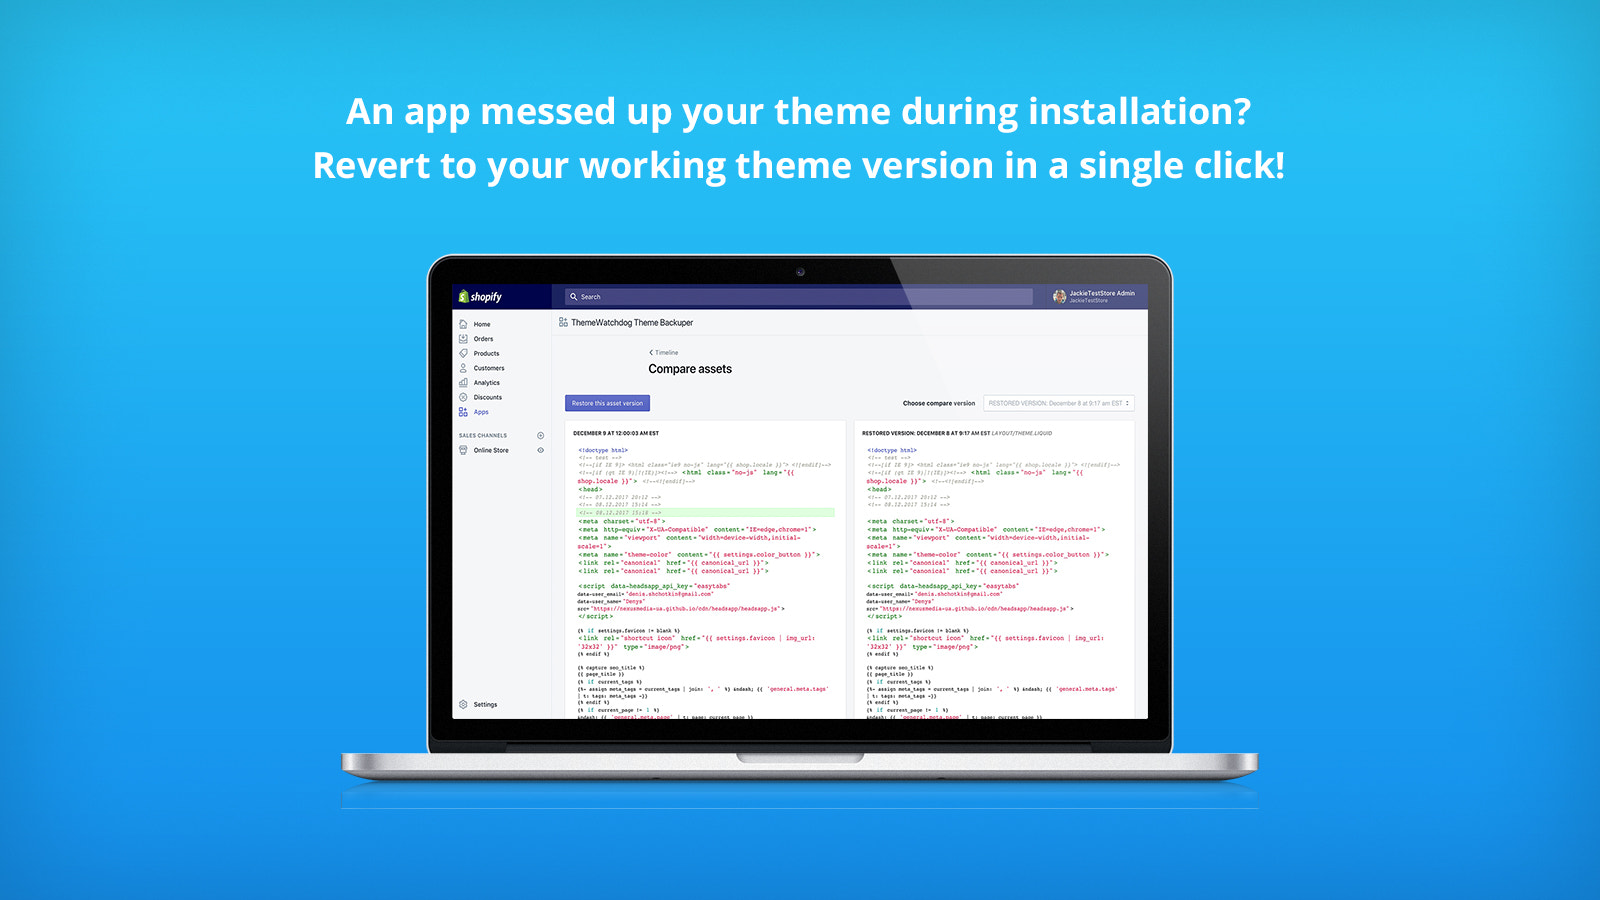 Revert to your working theme version from backup in a one click